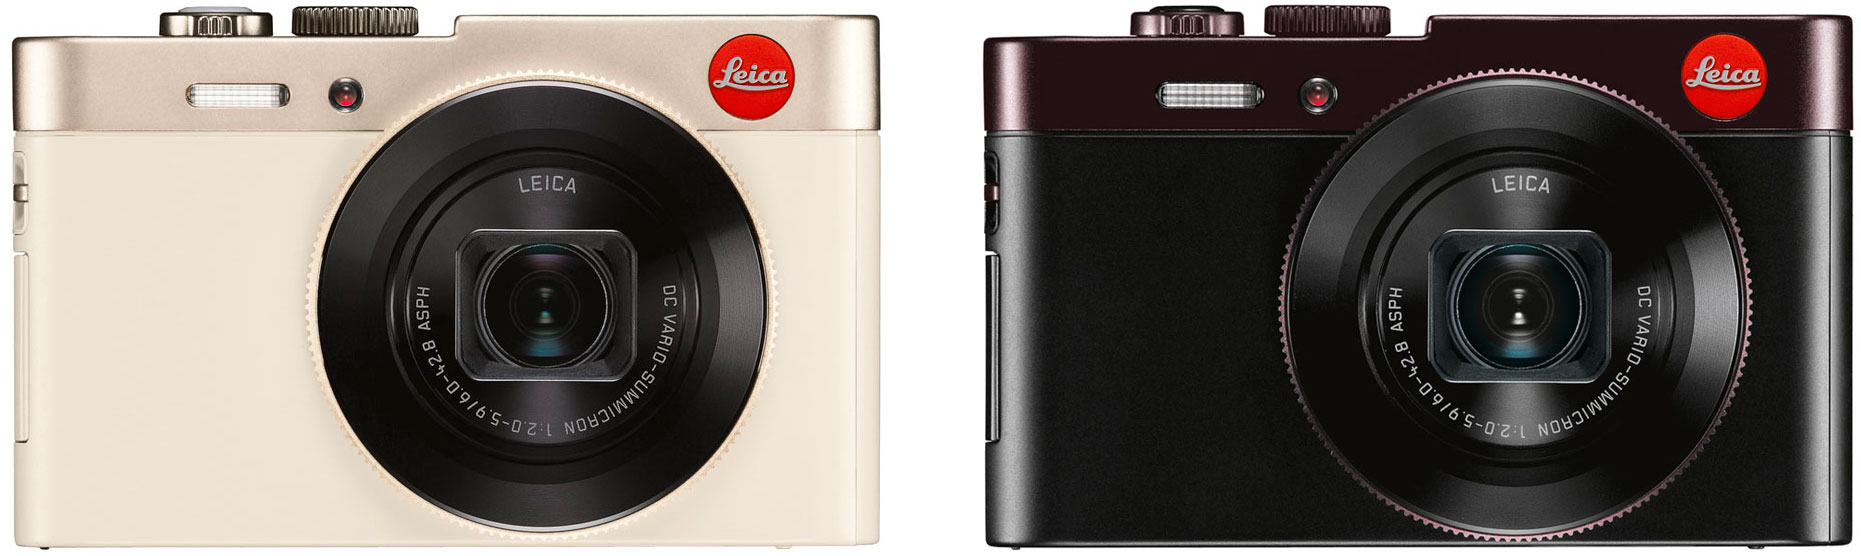 Leica-C_light-gold_dark-red-front-web